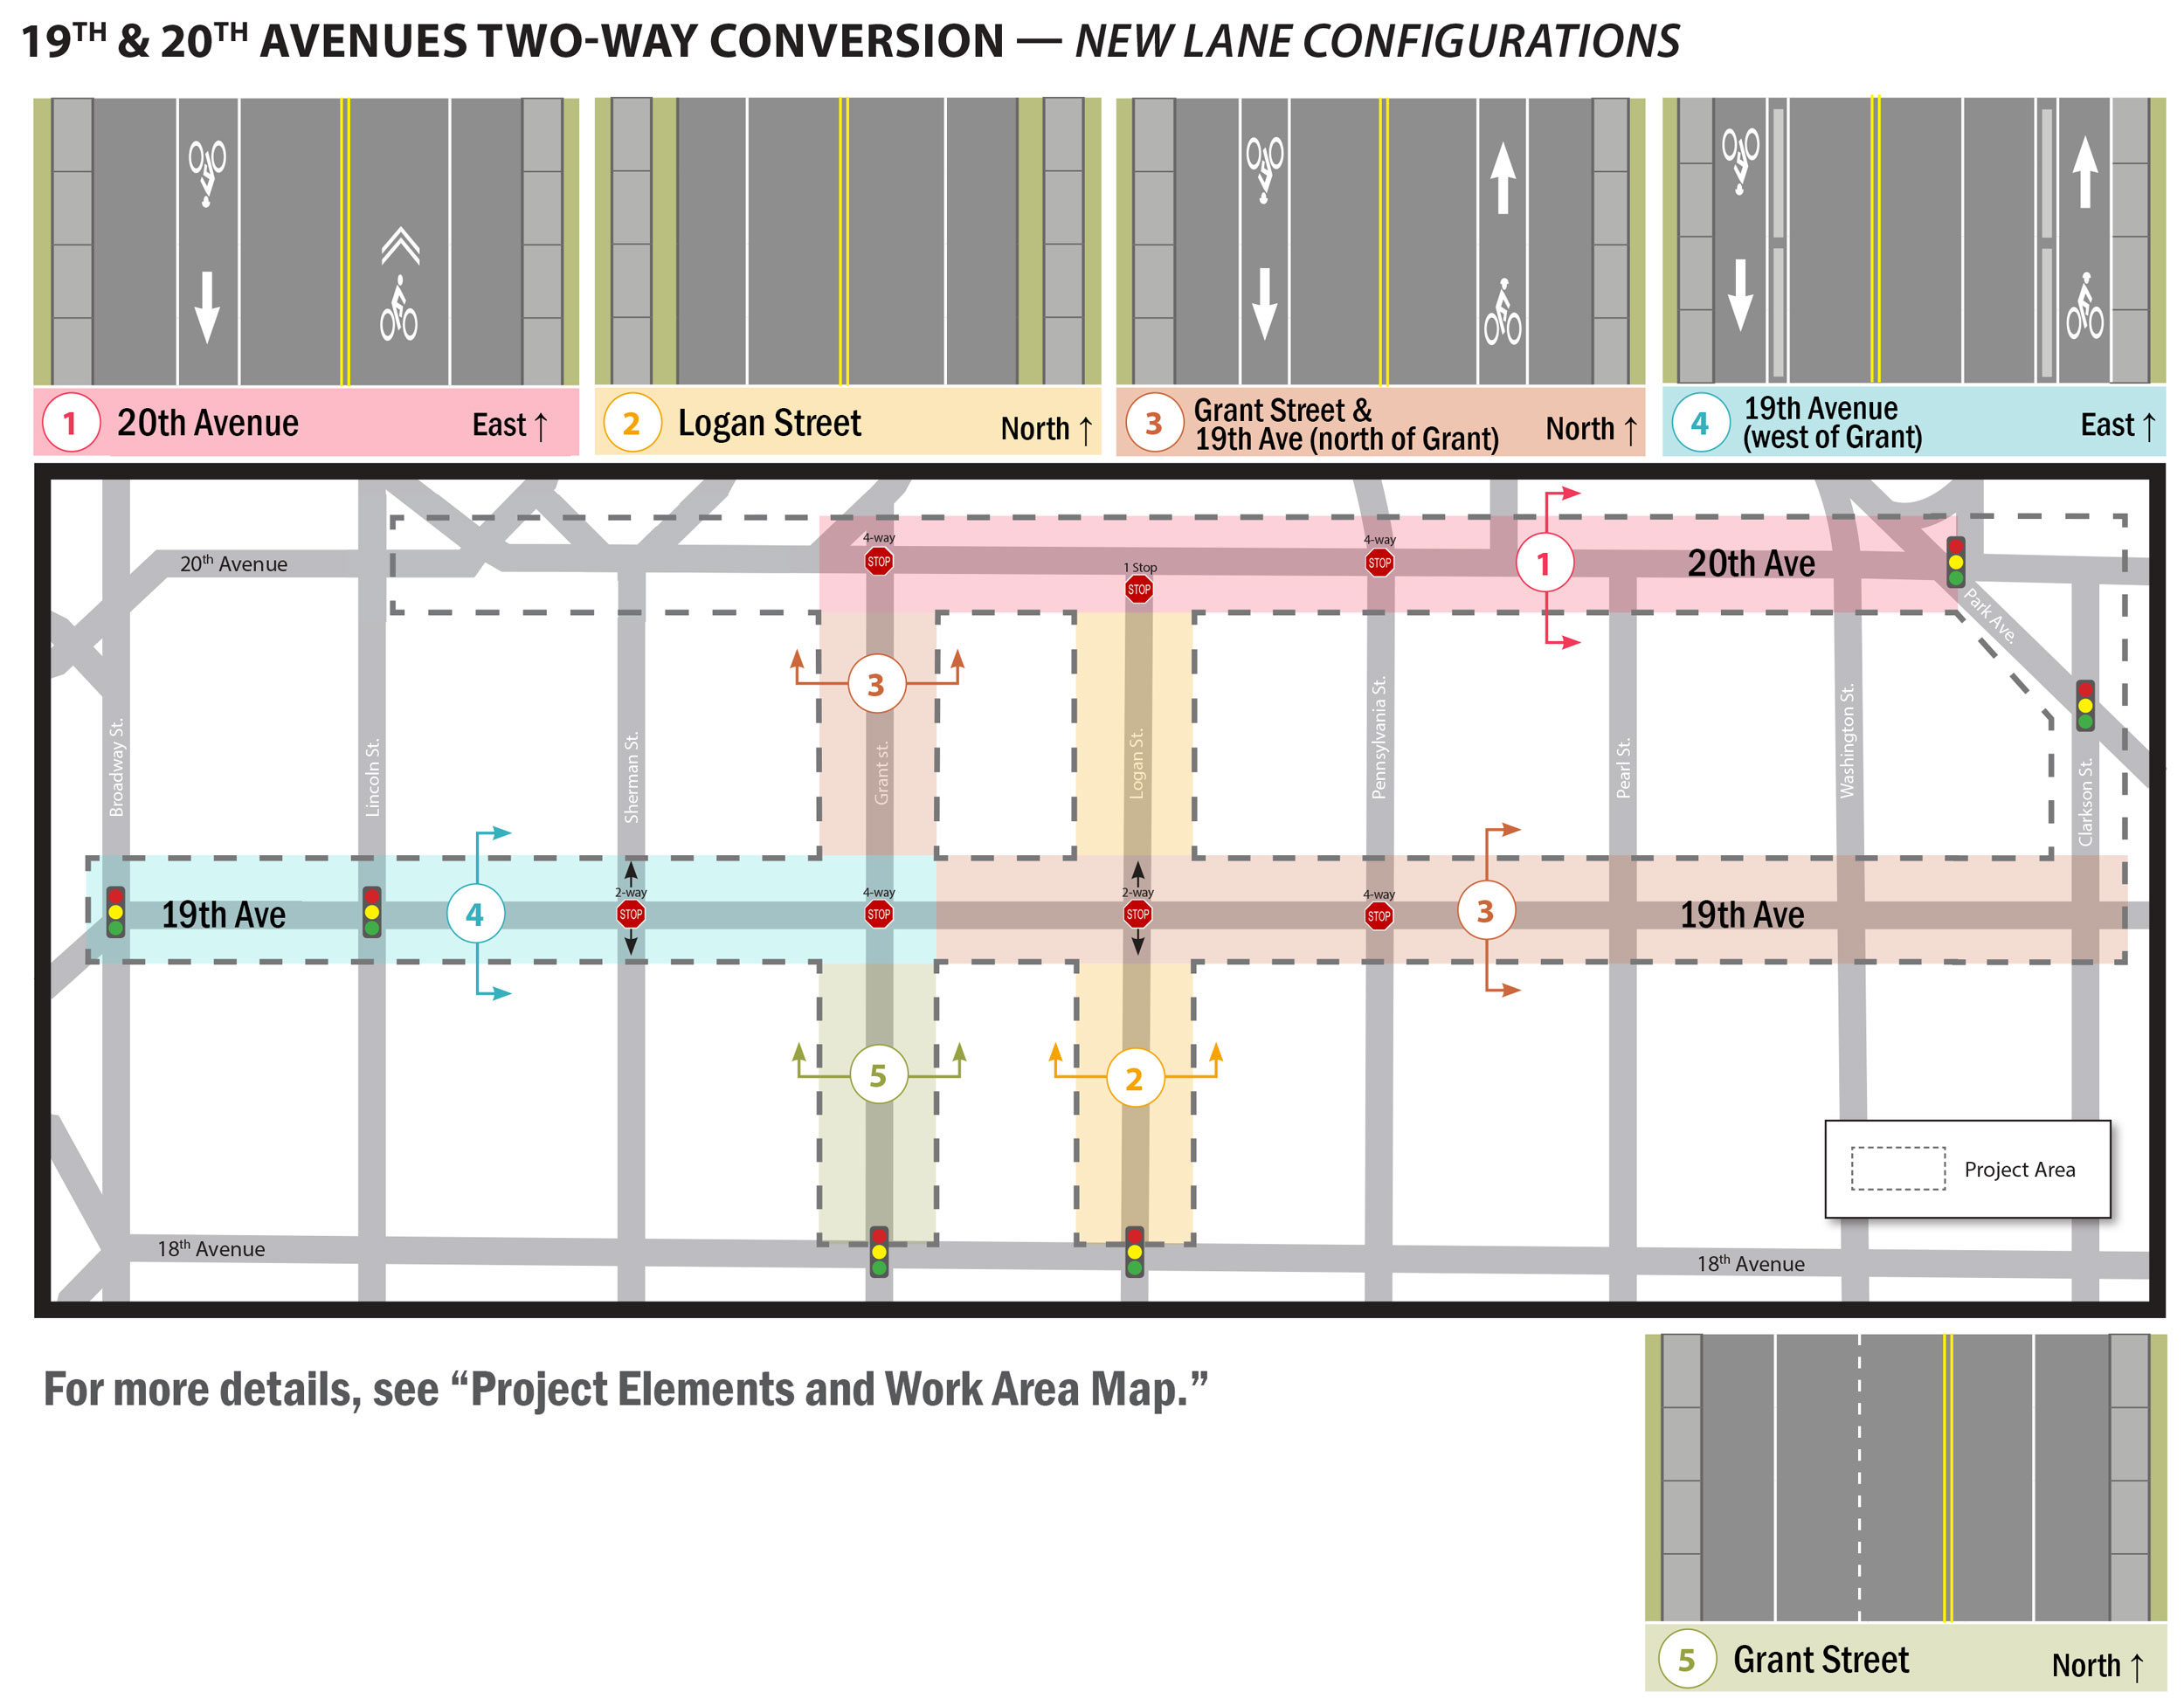 map of proposed lane configurations for 19th Avenue, 20th Avenue, Logan Street, and Grant Street